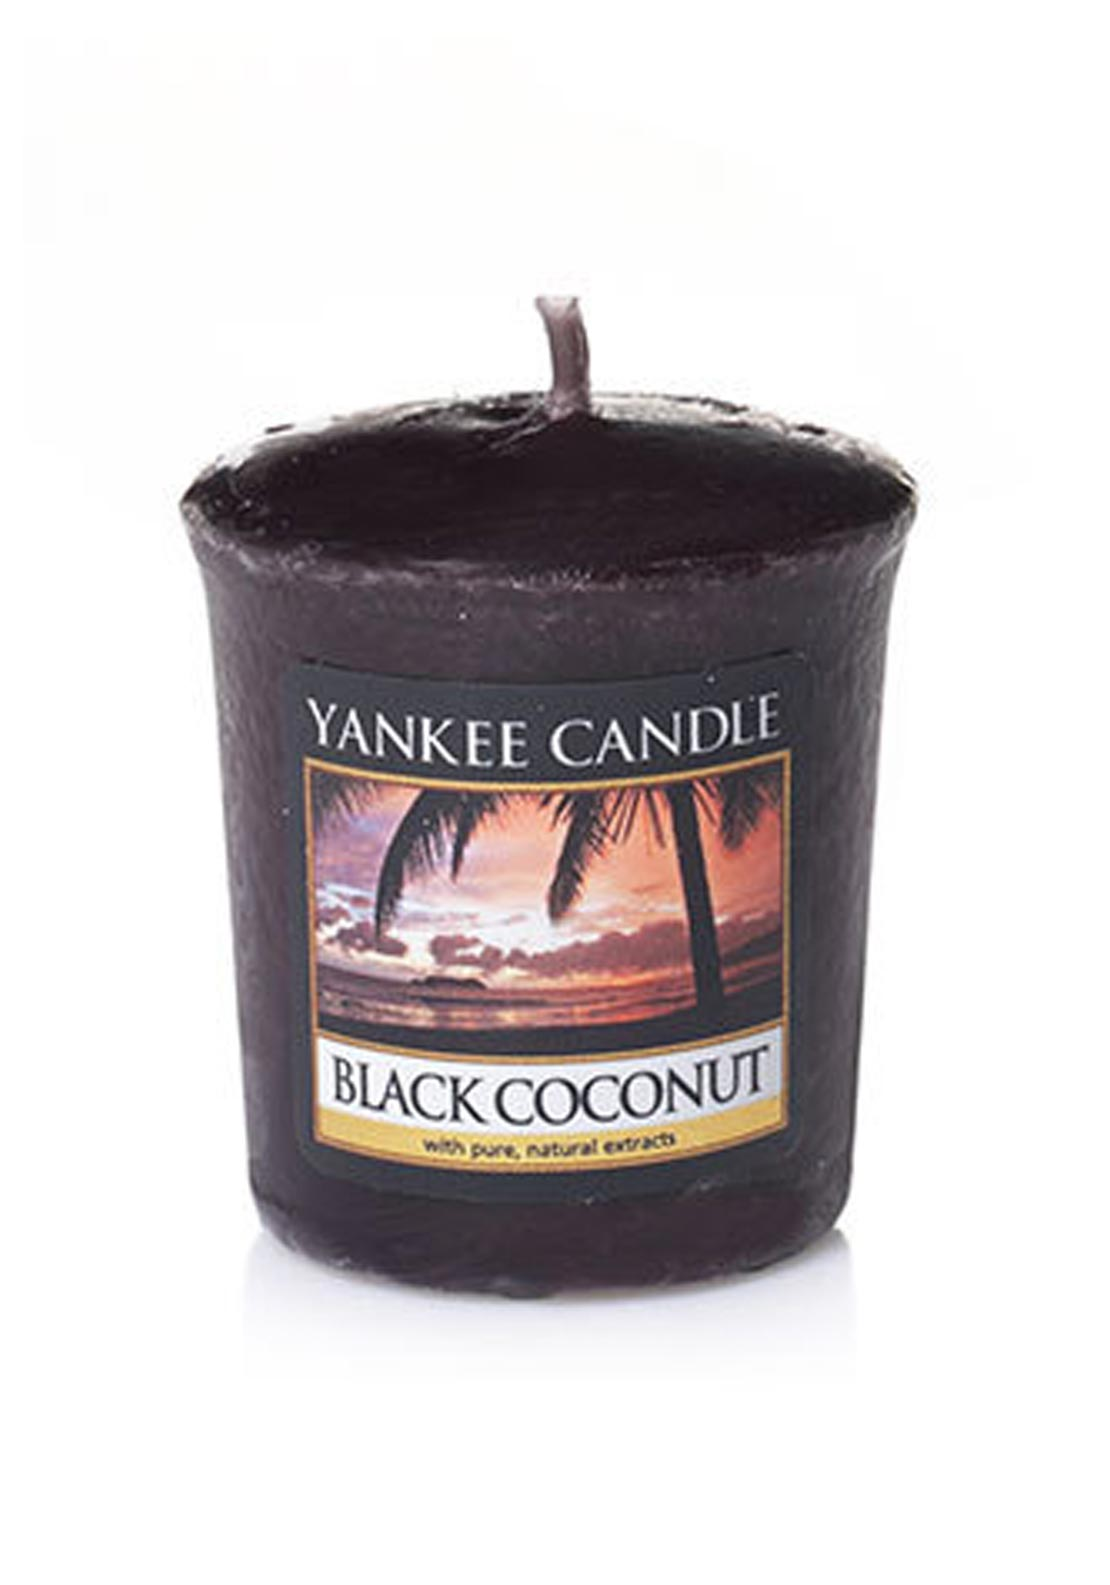 Yankee Candle Sample Votive Candle, Black Coconut